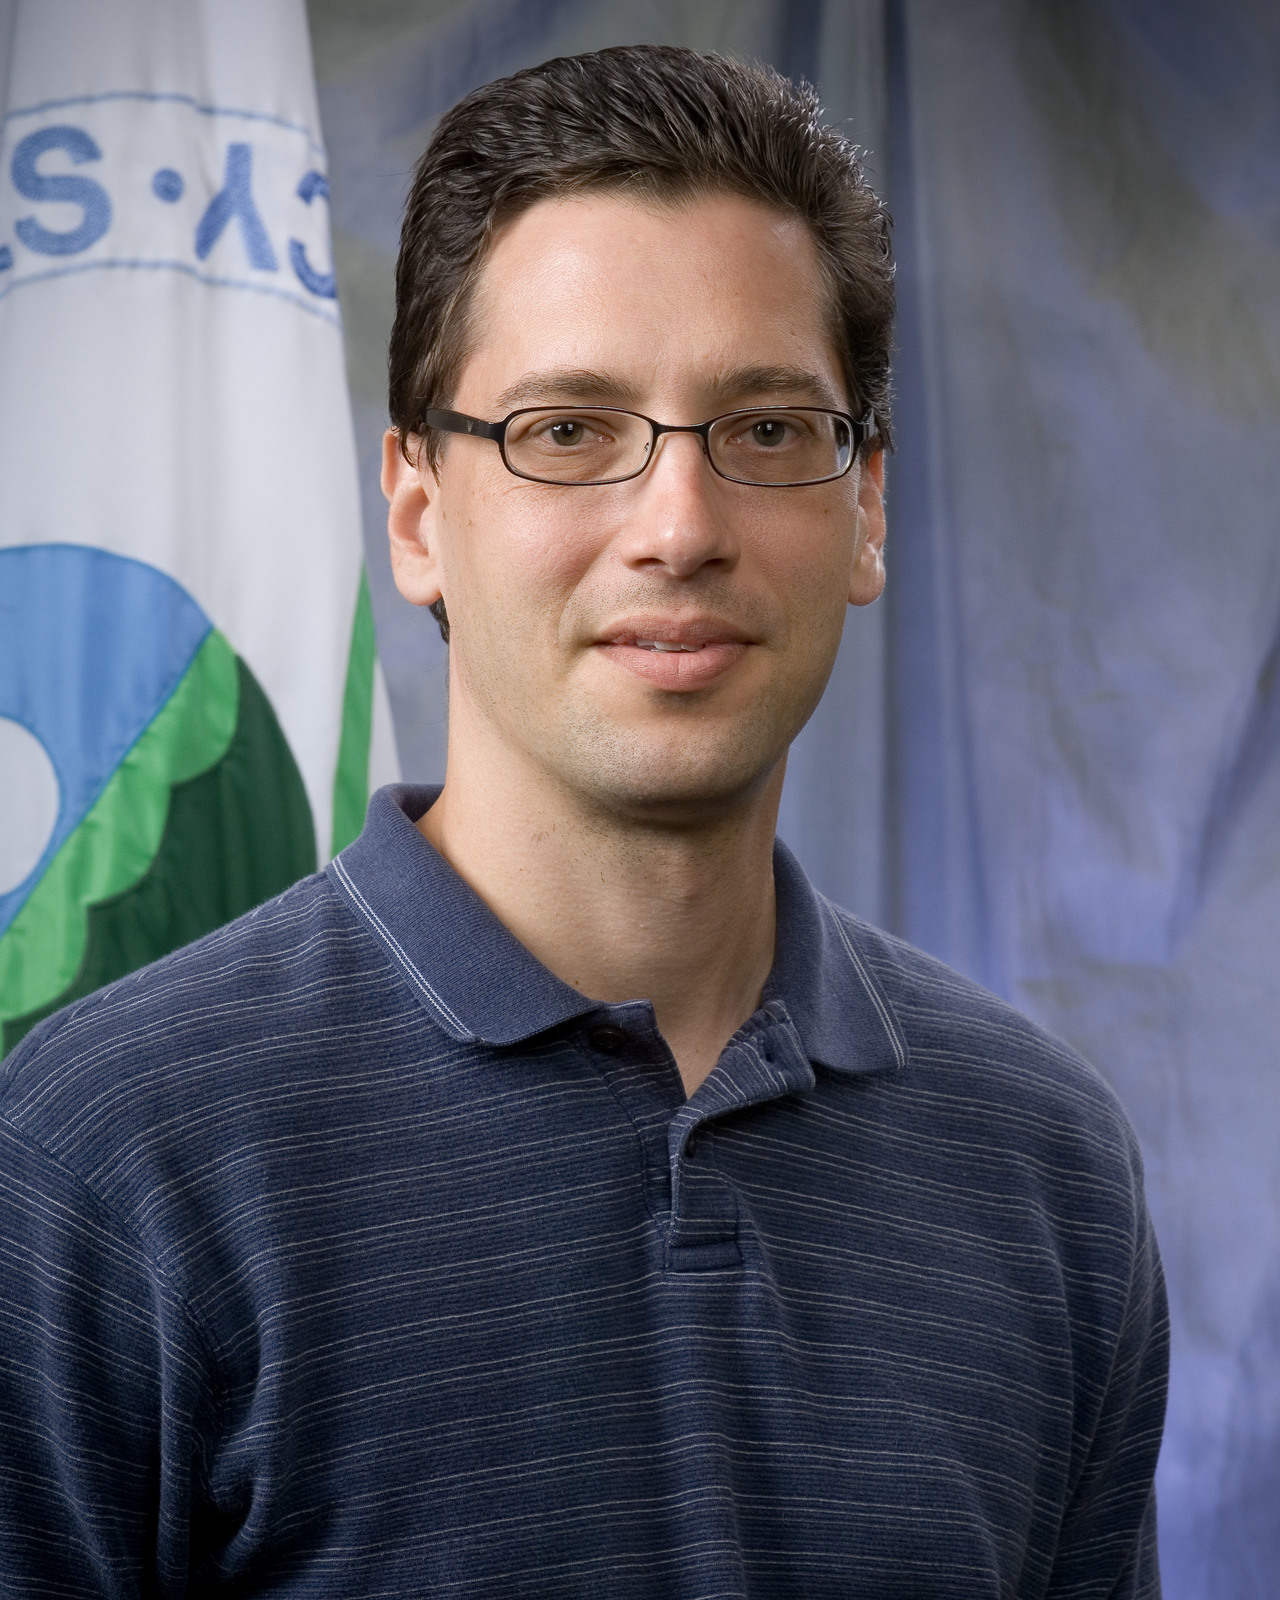 Office of Research and Development - Chapel Hill Portraits - Ed Karoly [412-APD-952-Ed_1Karoly_101.jpg]